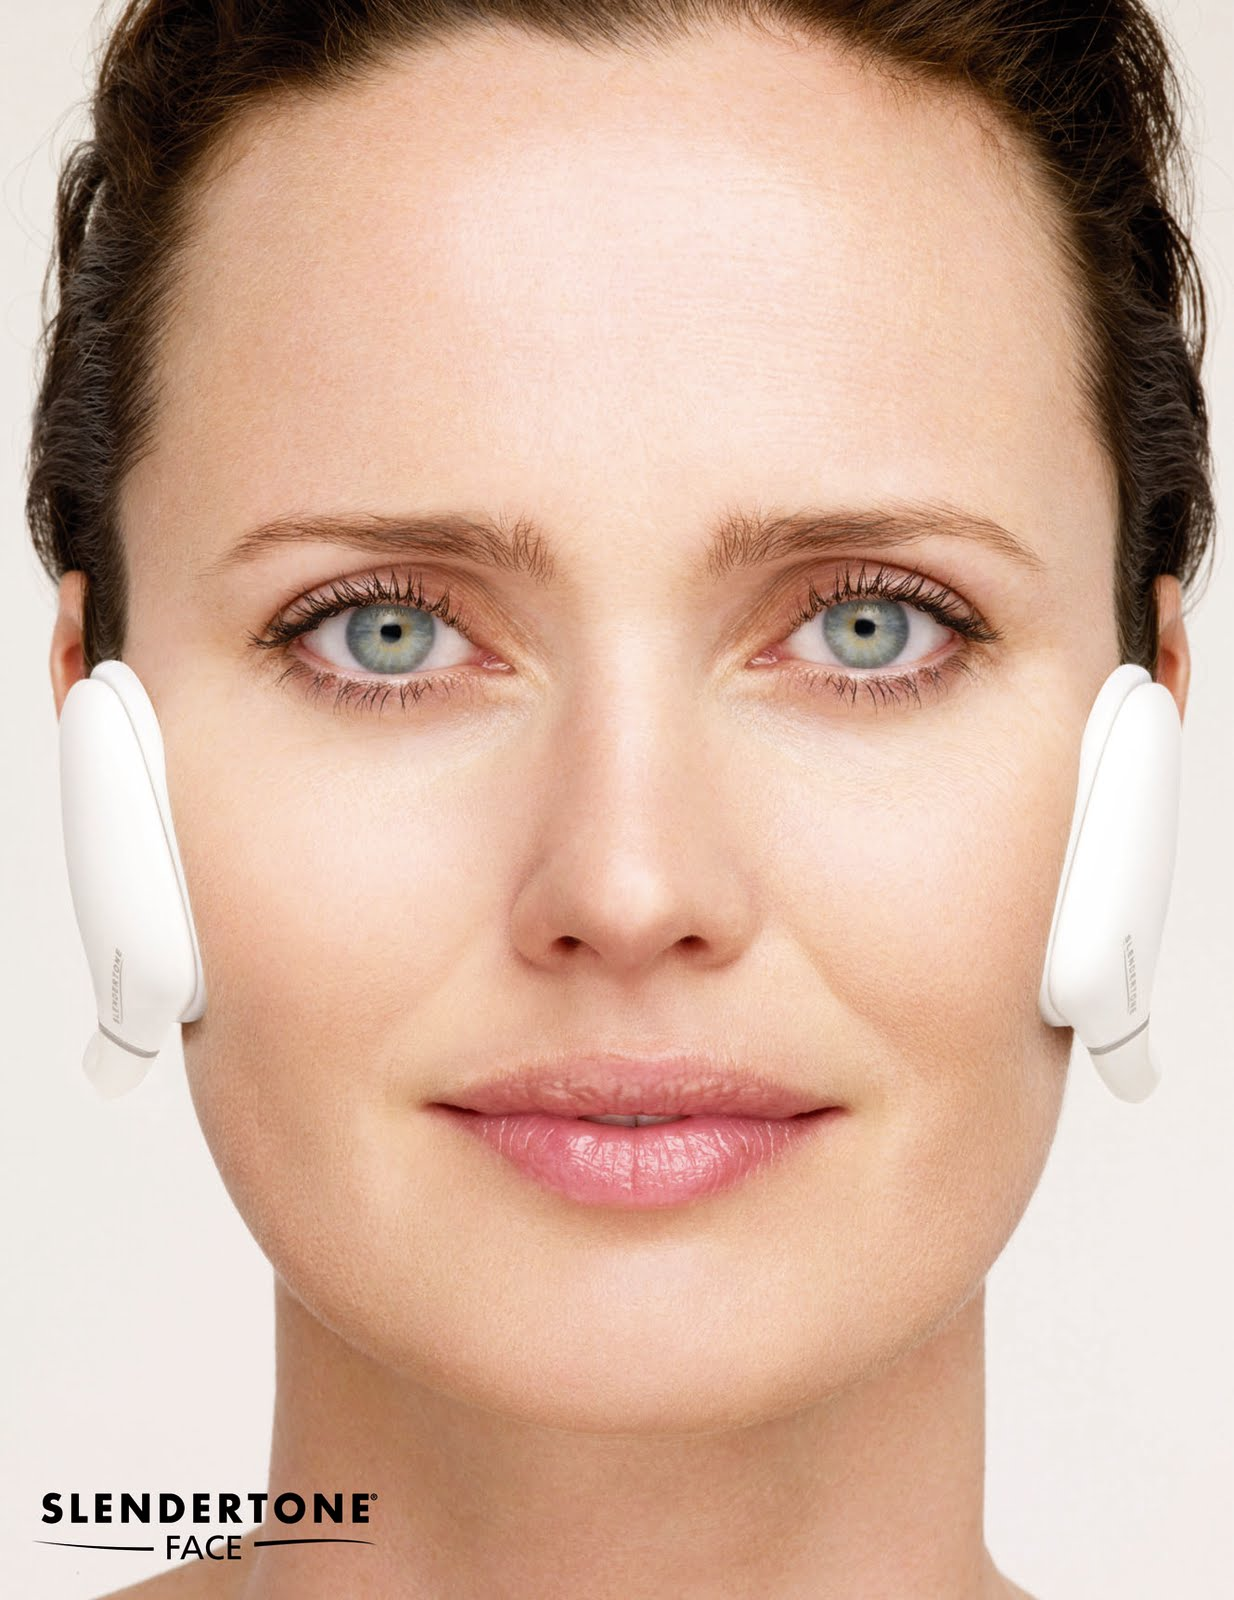 ... : The Sunday Review - Slendertone FACE : Taking life as it comes